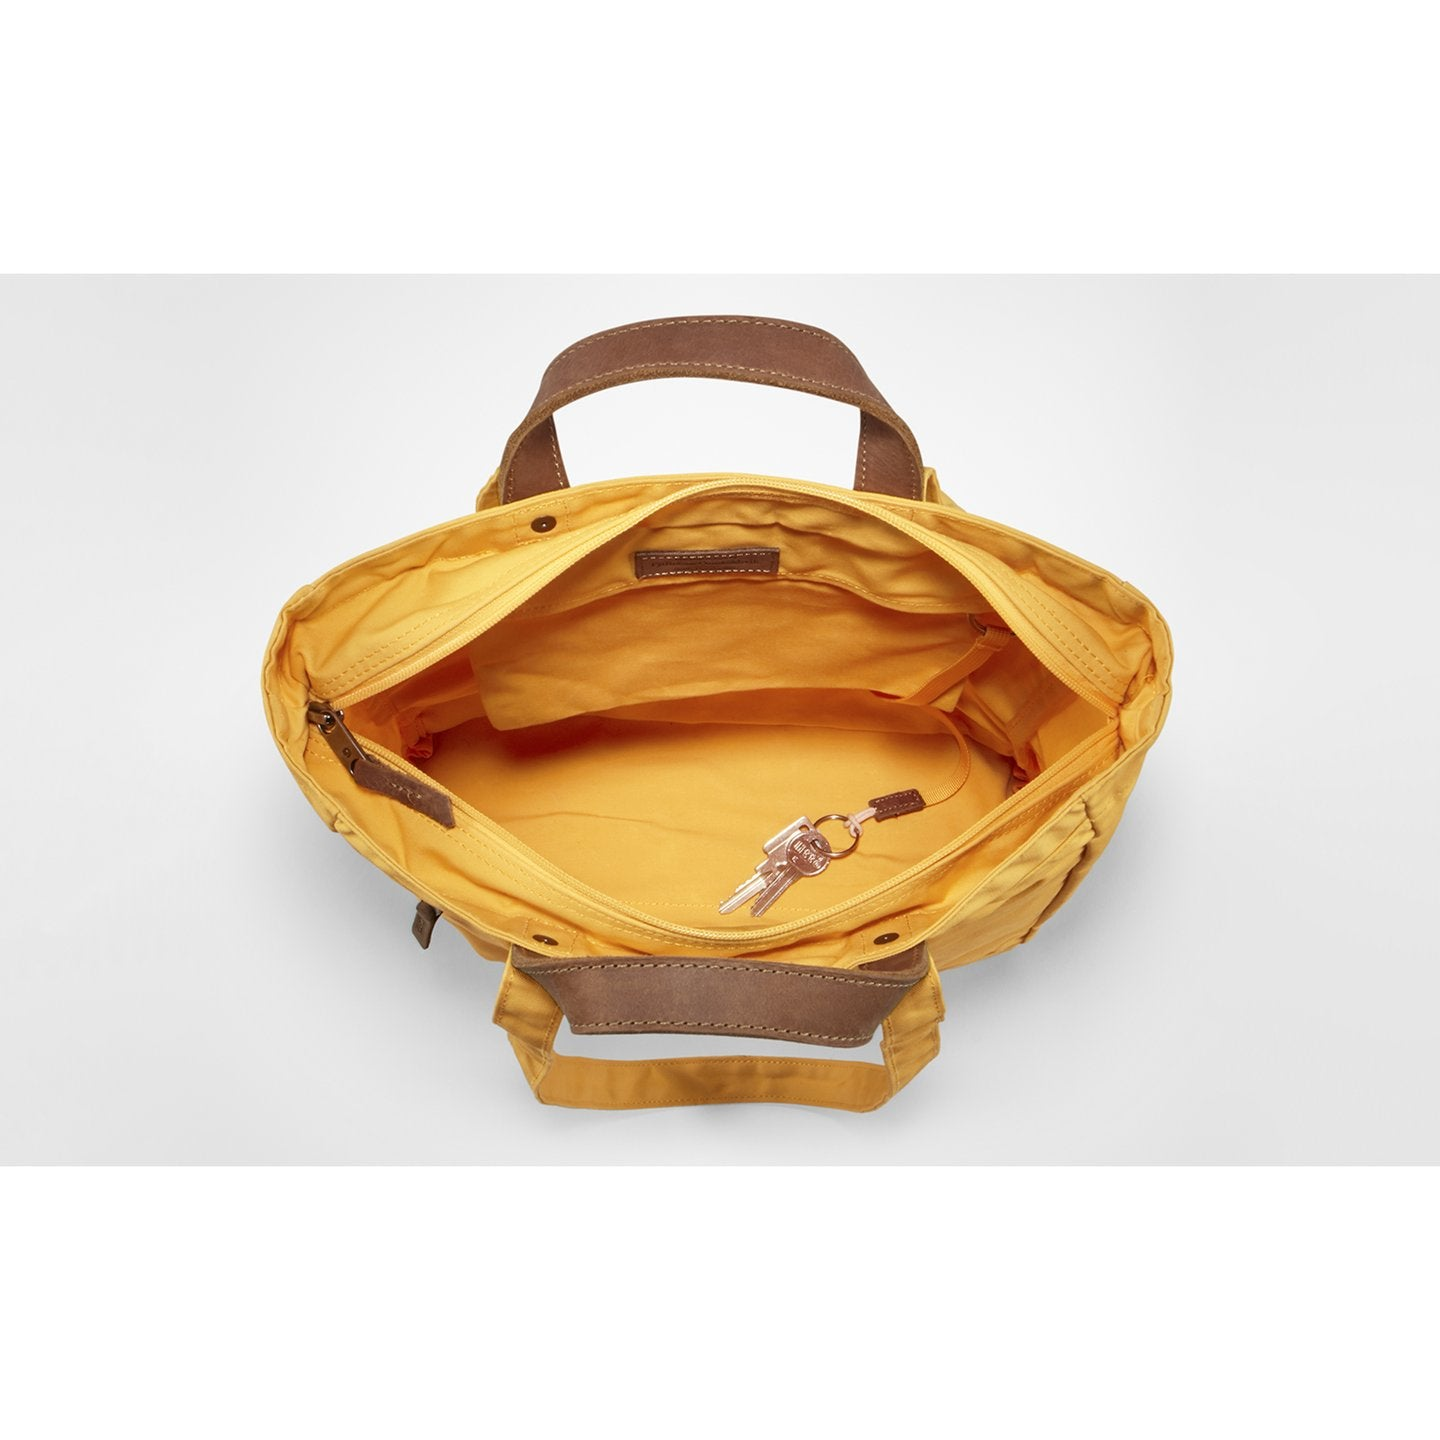 Fjallraven Totepack No.1 - Find Your Feet Australia Hobart Launceston Tasmania